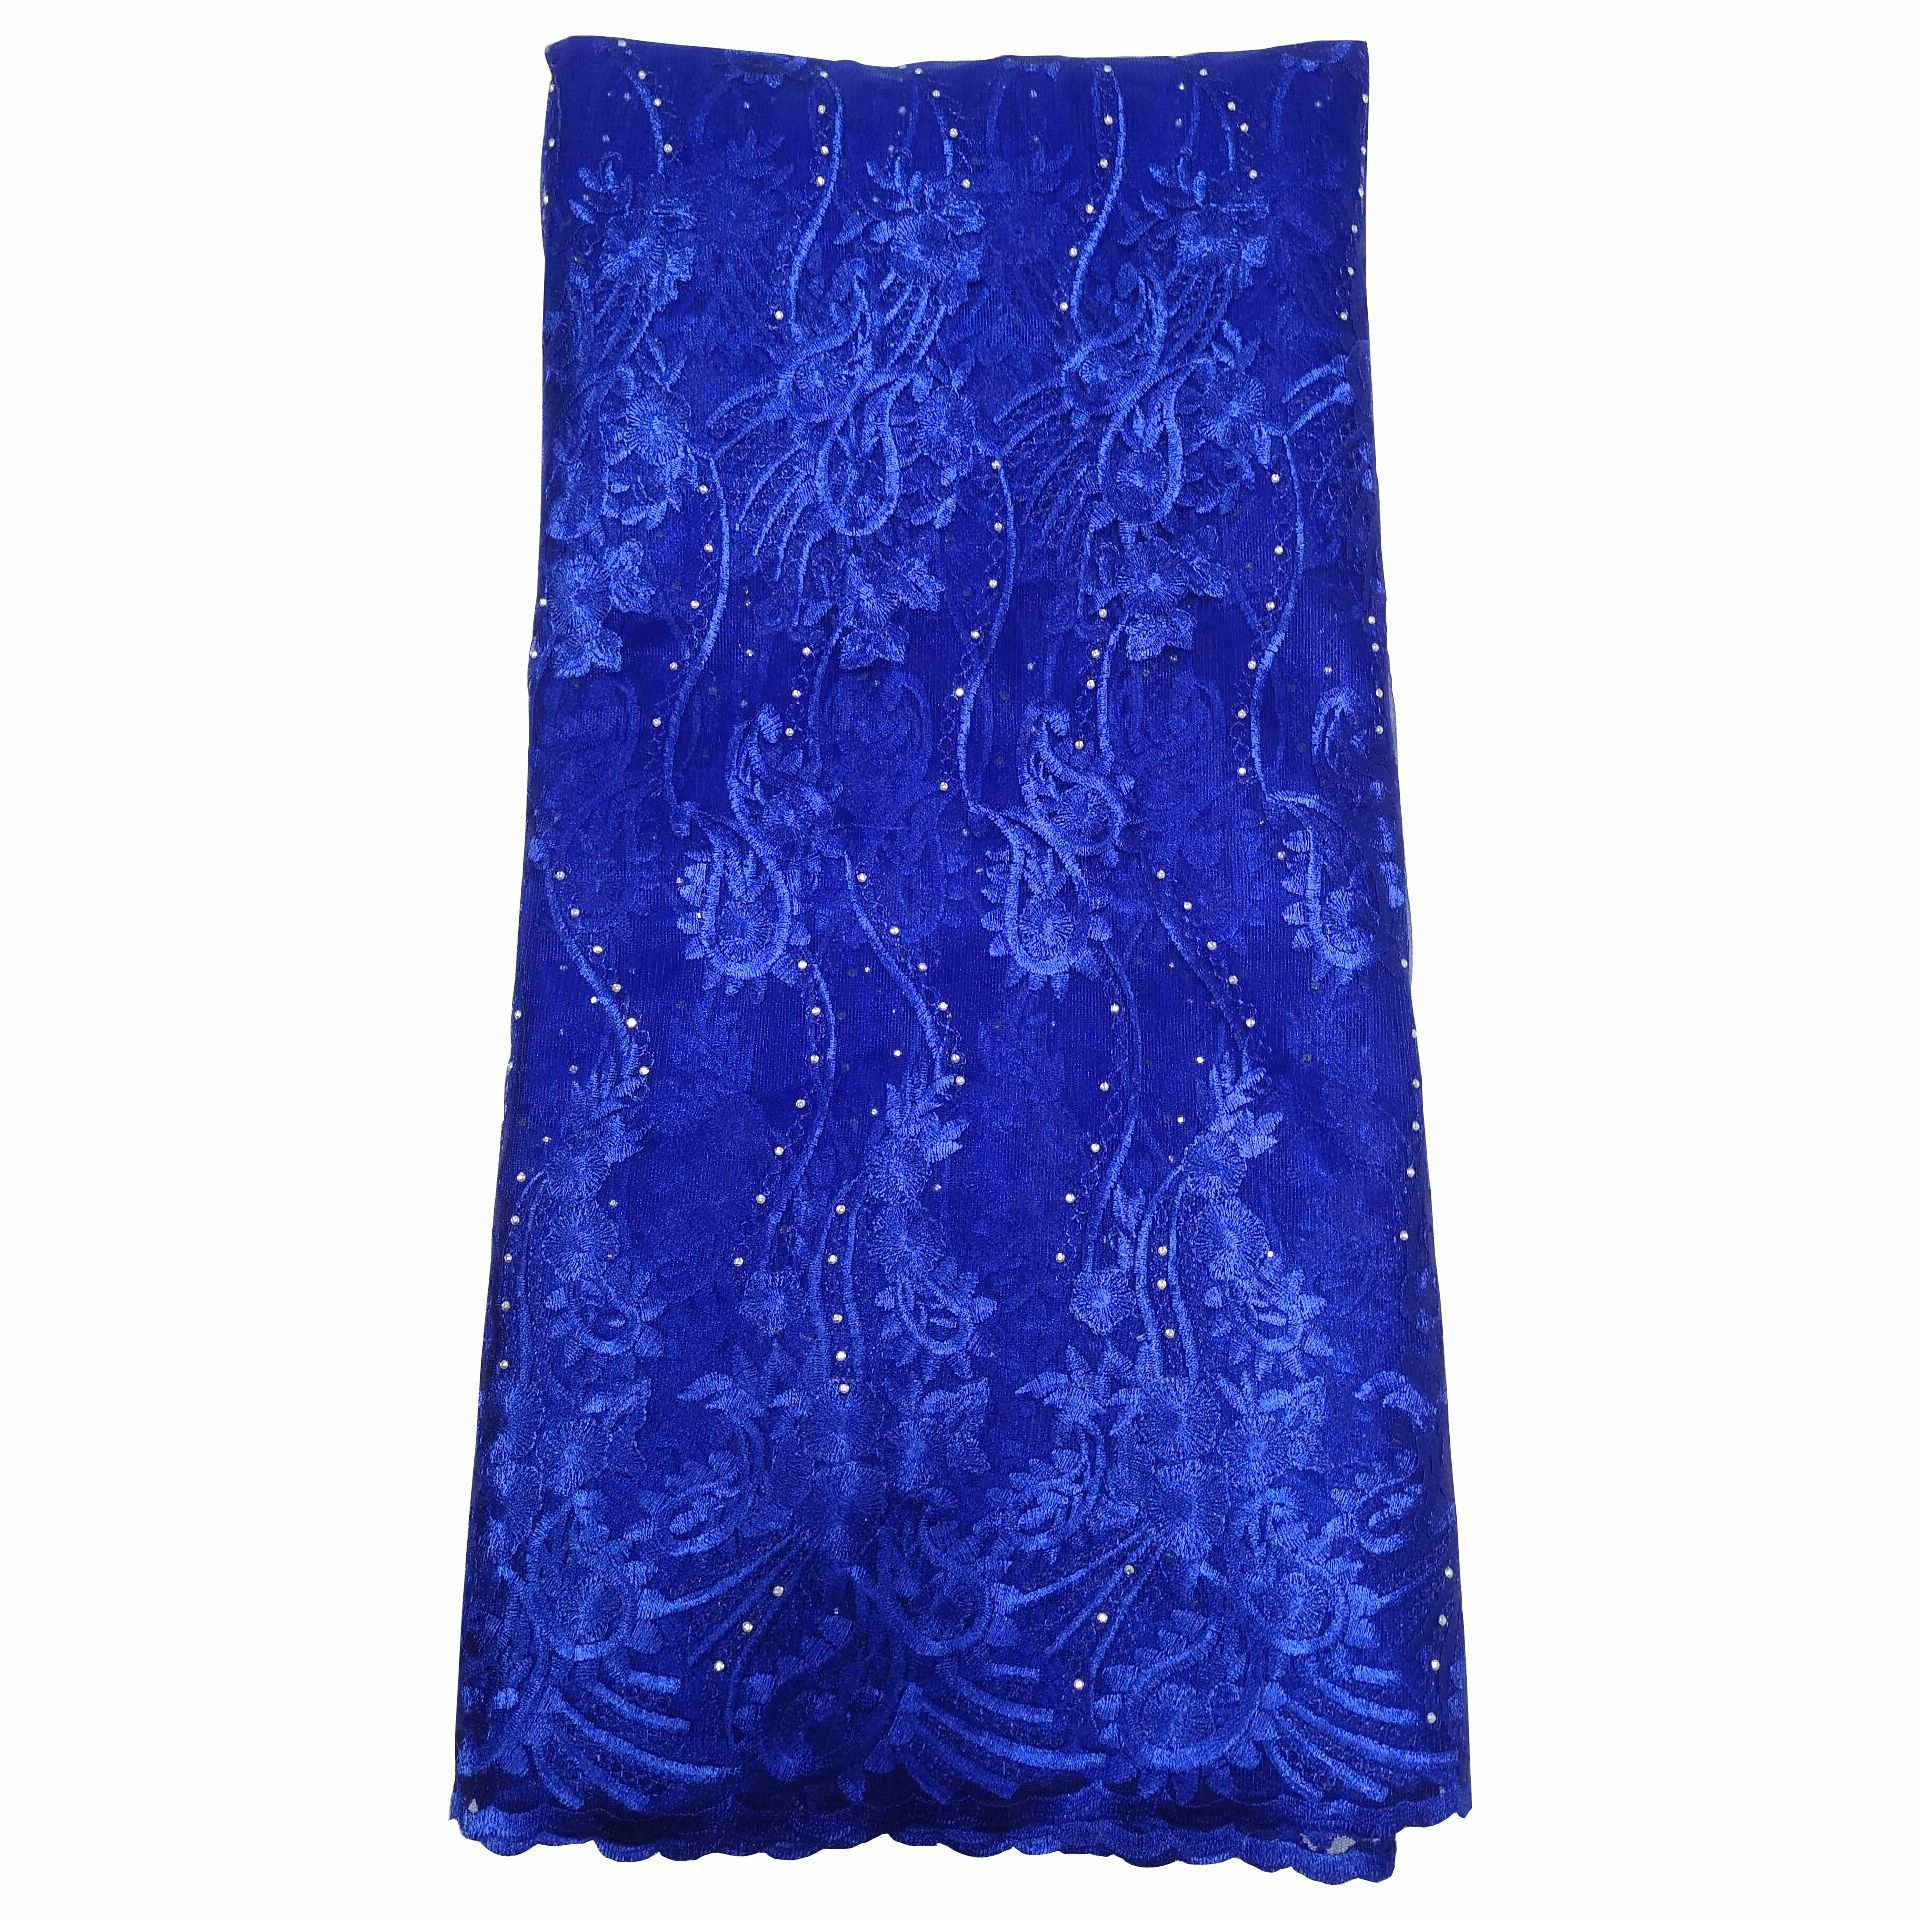 2019 High Quality African French Lace Fabric Blue Swiss Voile Lace In Switzerland With Stones Lace Fabric